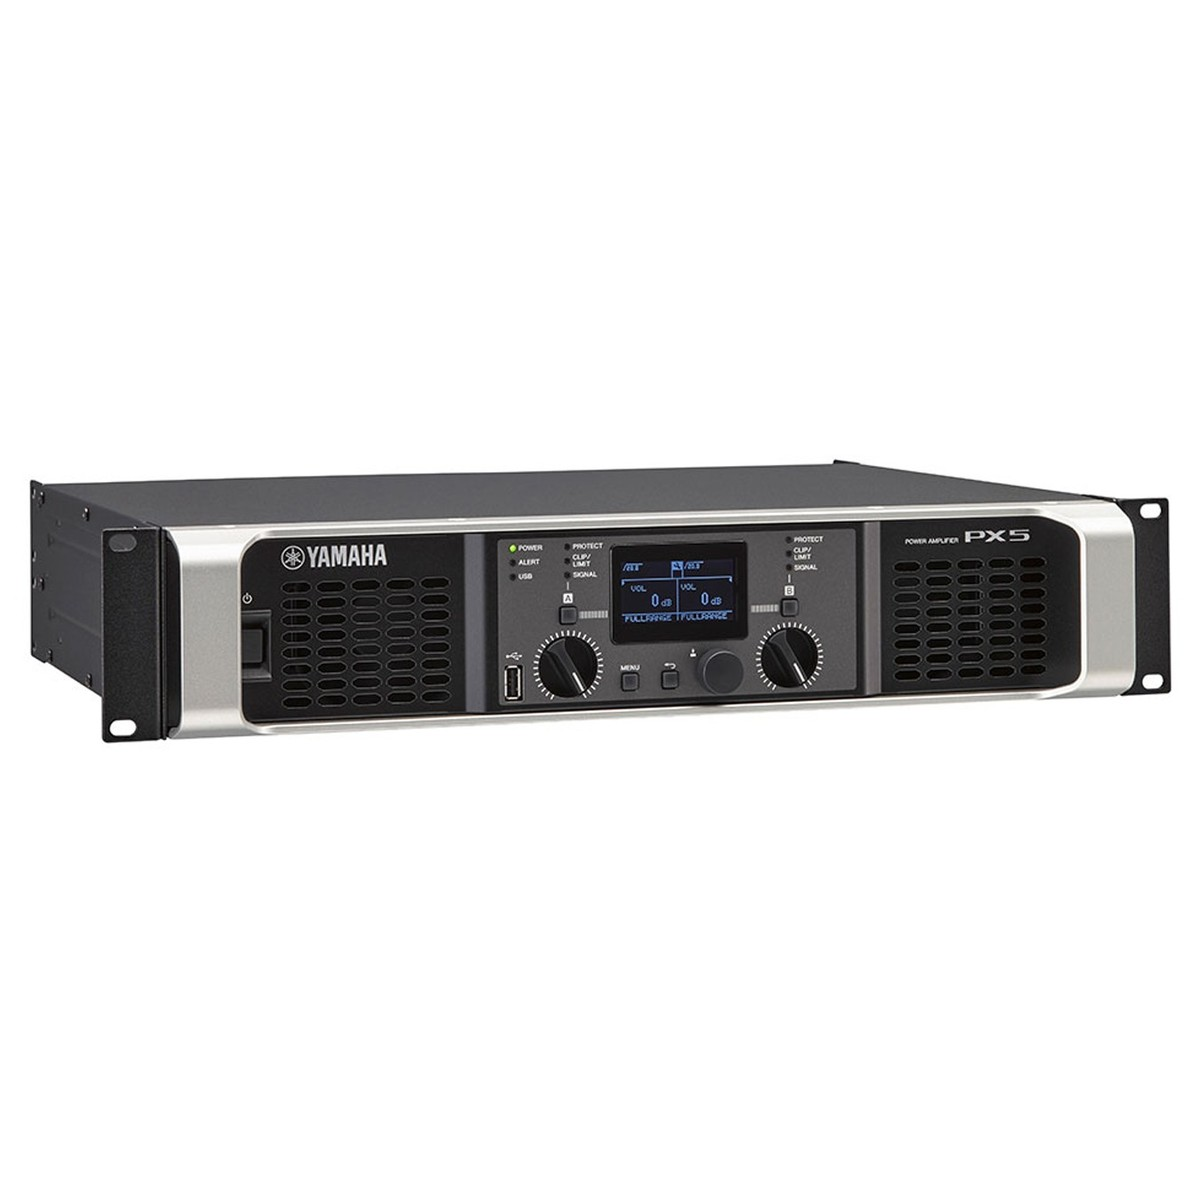 Yamaha Px5 Power Amplifier At Gear4music Best Mp3 Usb And Radio Pink Amp Loading Zoom